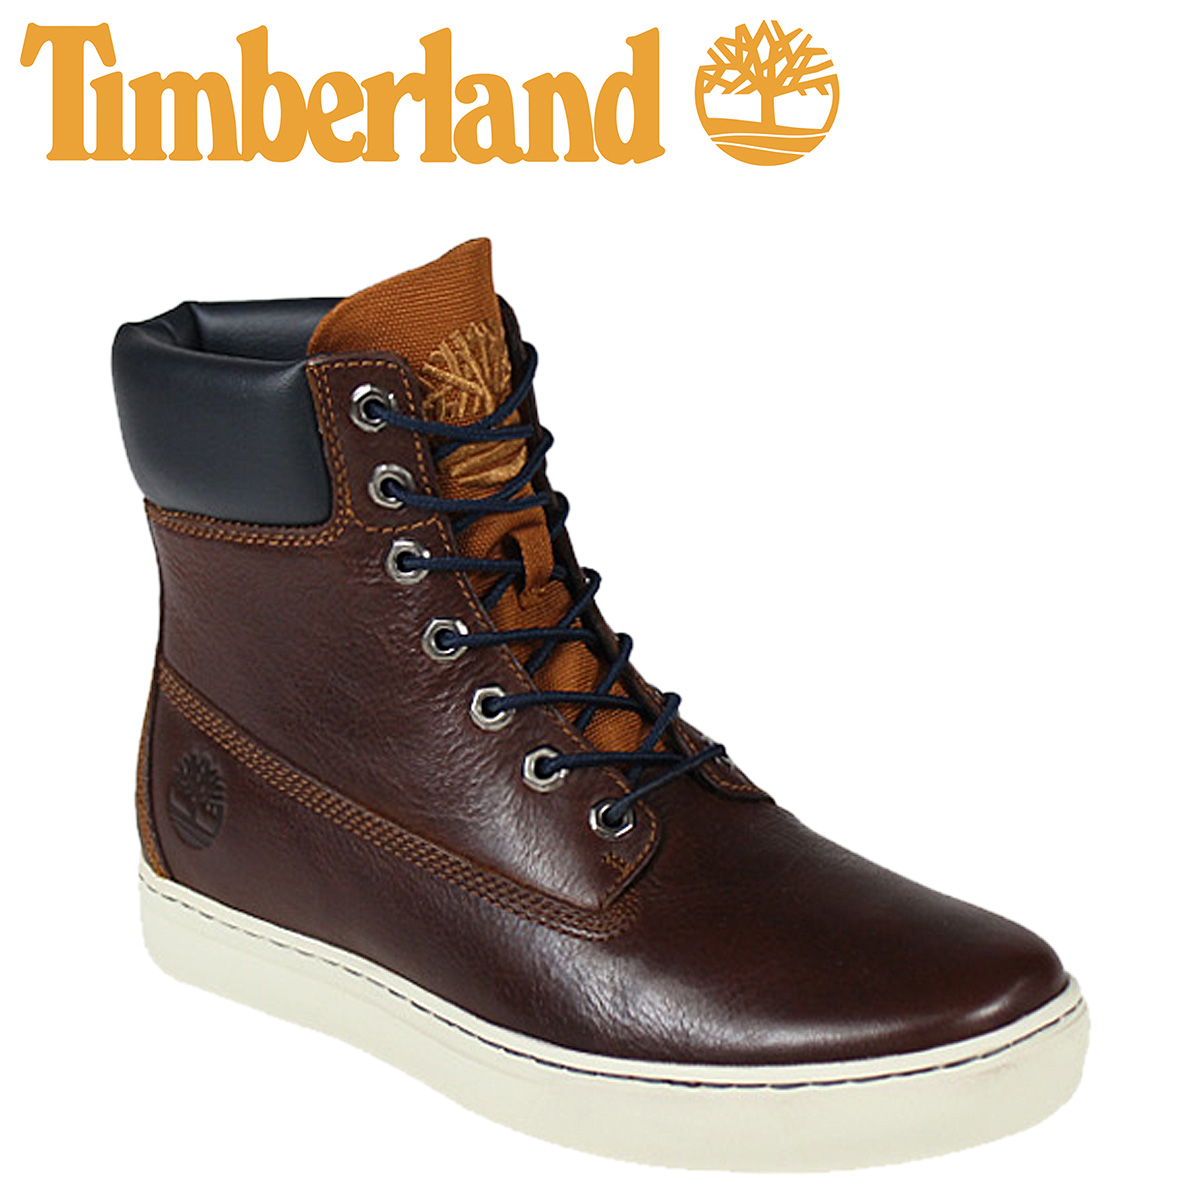 b637e1fcd1ae Timberland Newmarket Timberland cupsole 2.0 6 inch boots NEWMARKET 2.0 CUPSOLE  6 INCH BOOT leather men s 6811A ginger x Navy  1   9 new in stock    regular  ...